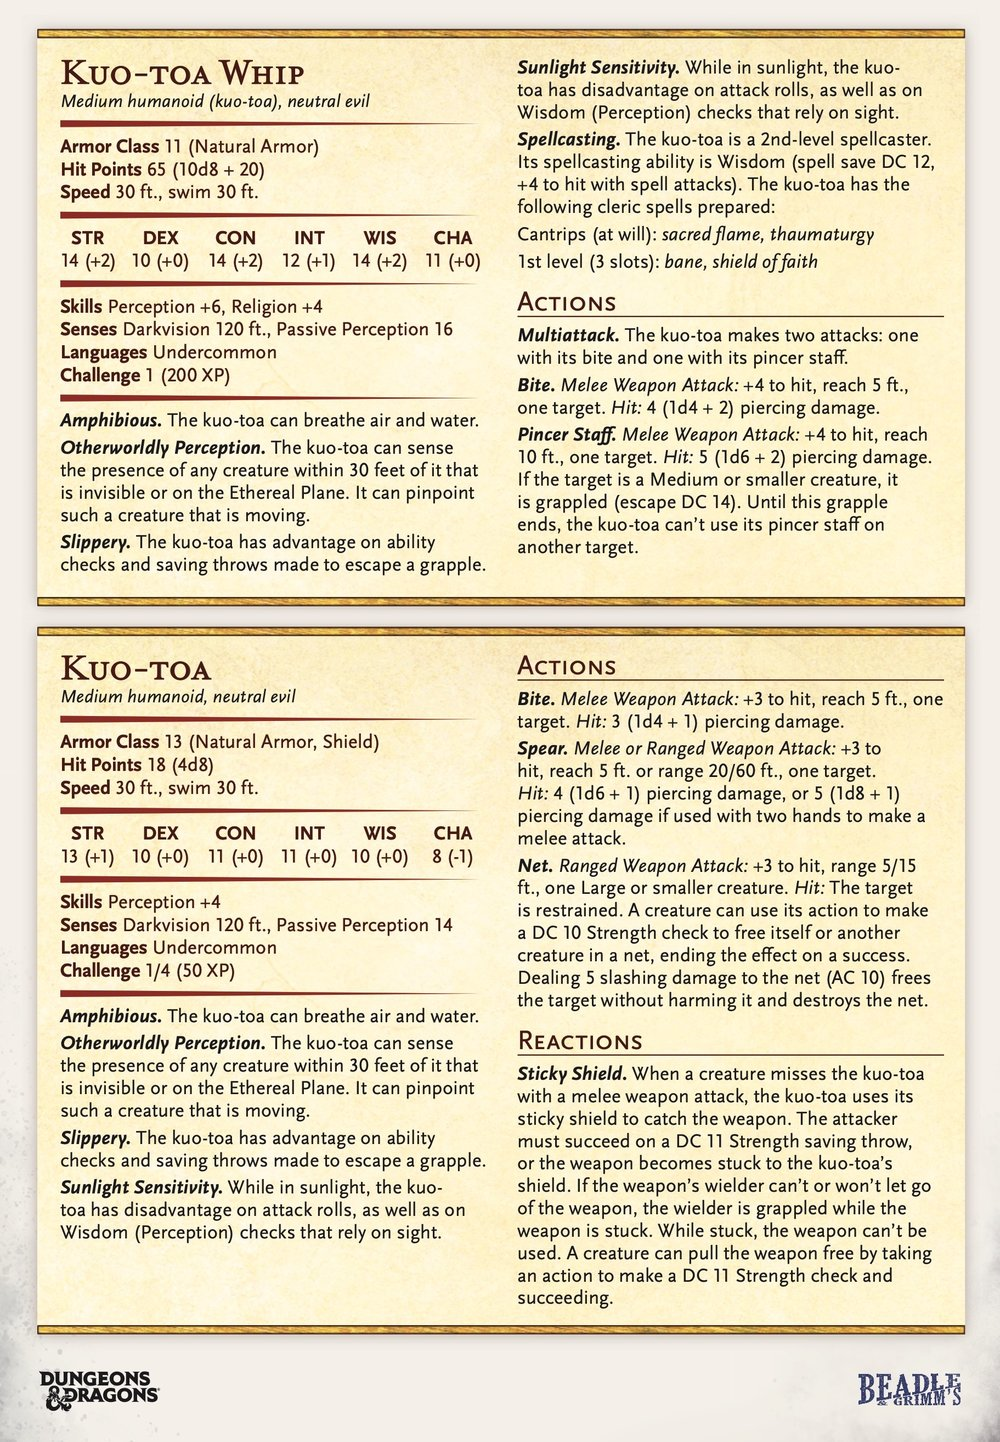 Encounter_card-Kuo-toa 2_lower.jpeg